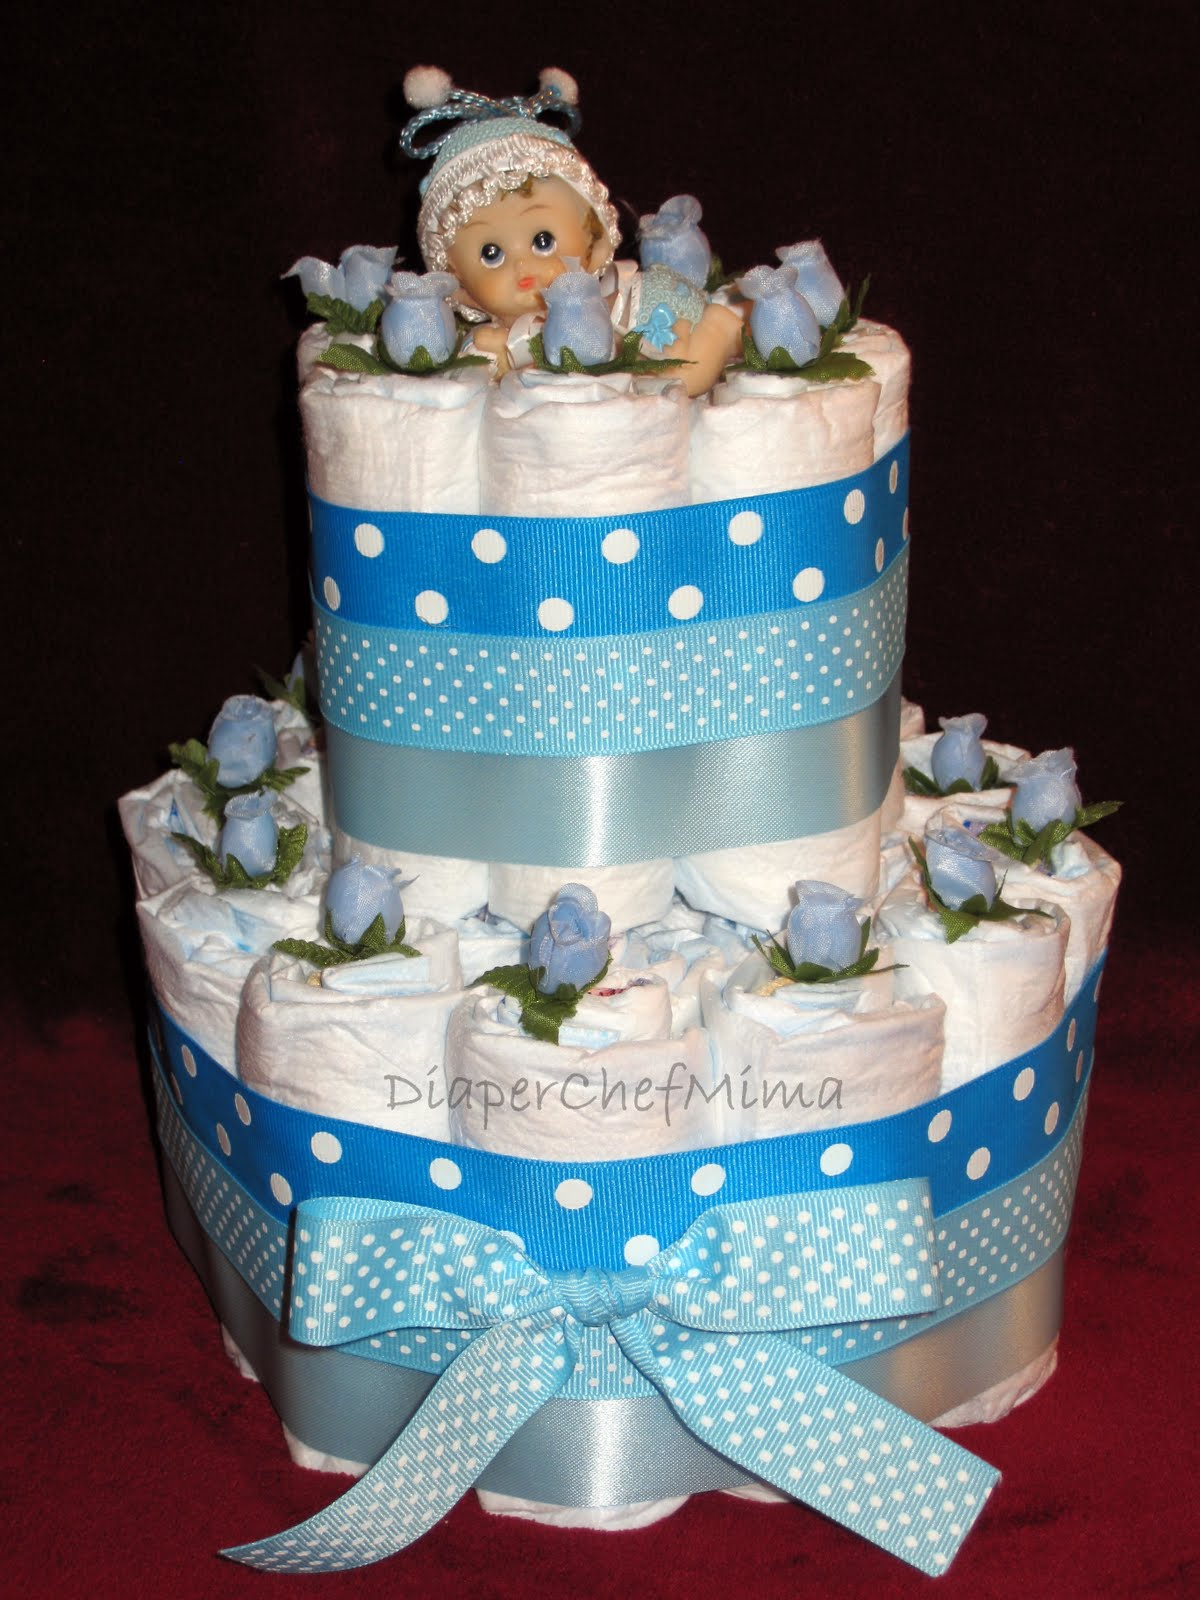 Baby Shower Cakes: Baby Shower Diaper Cake Centerpiece Ideas